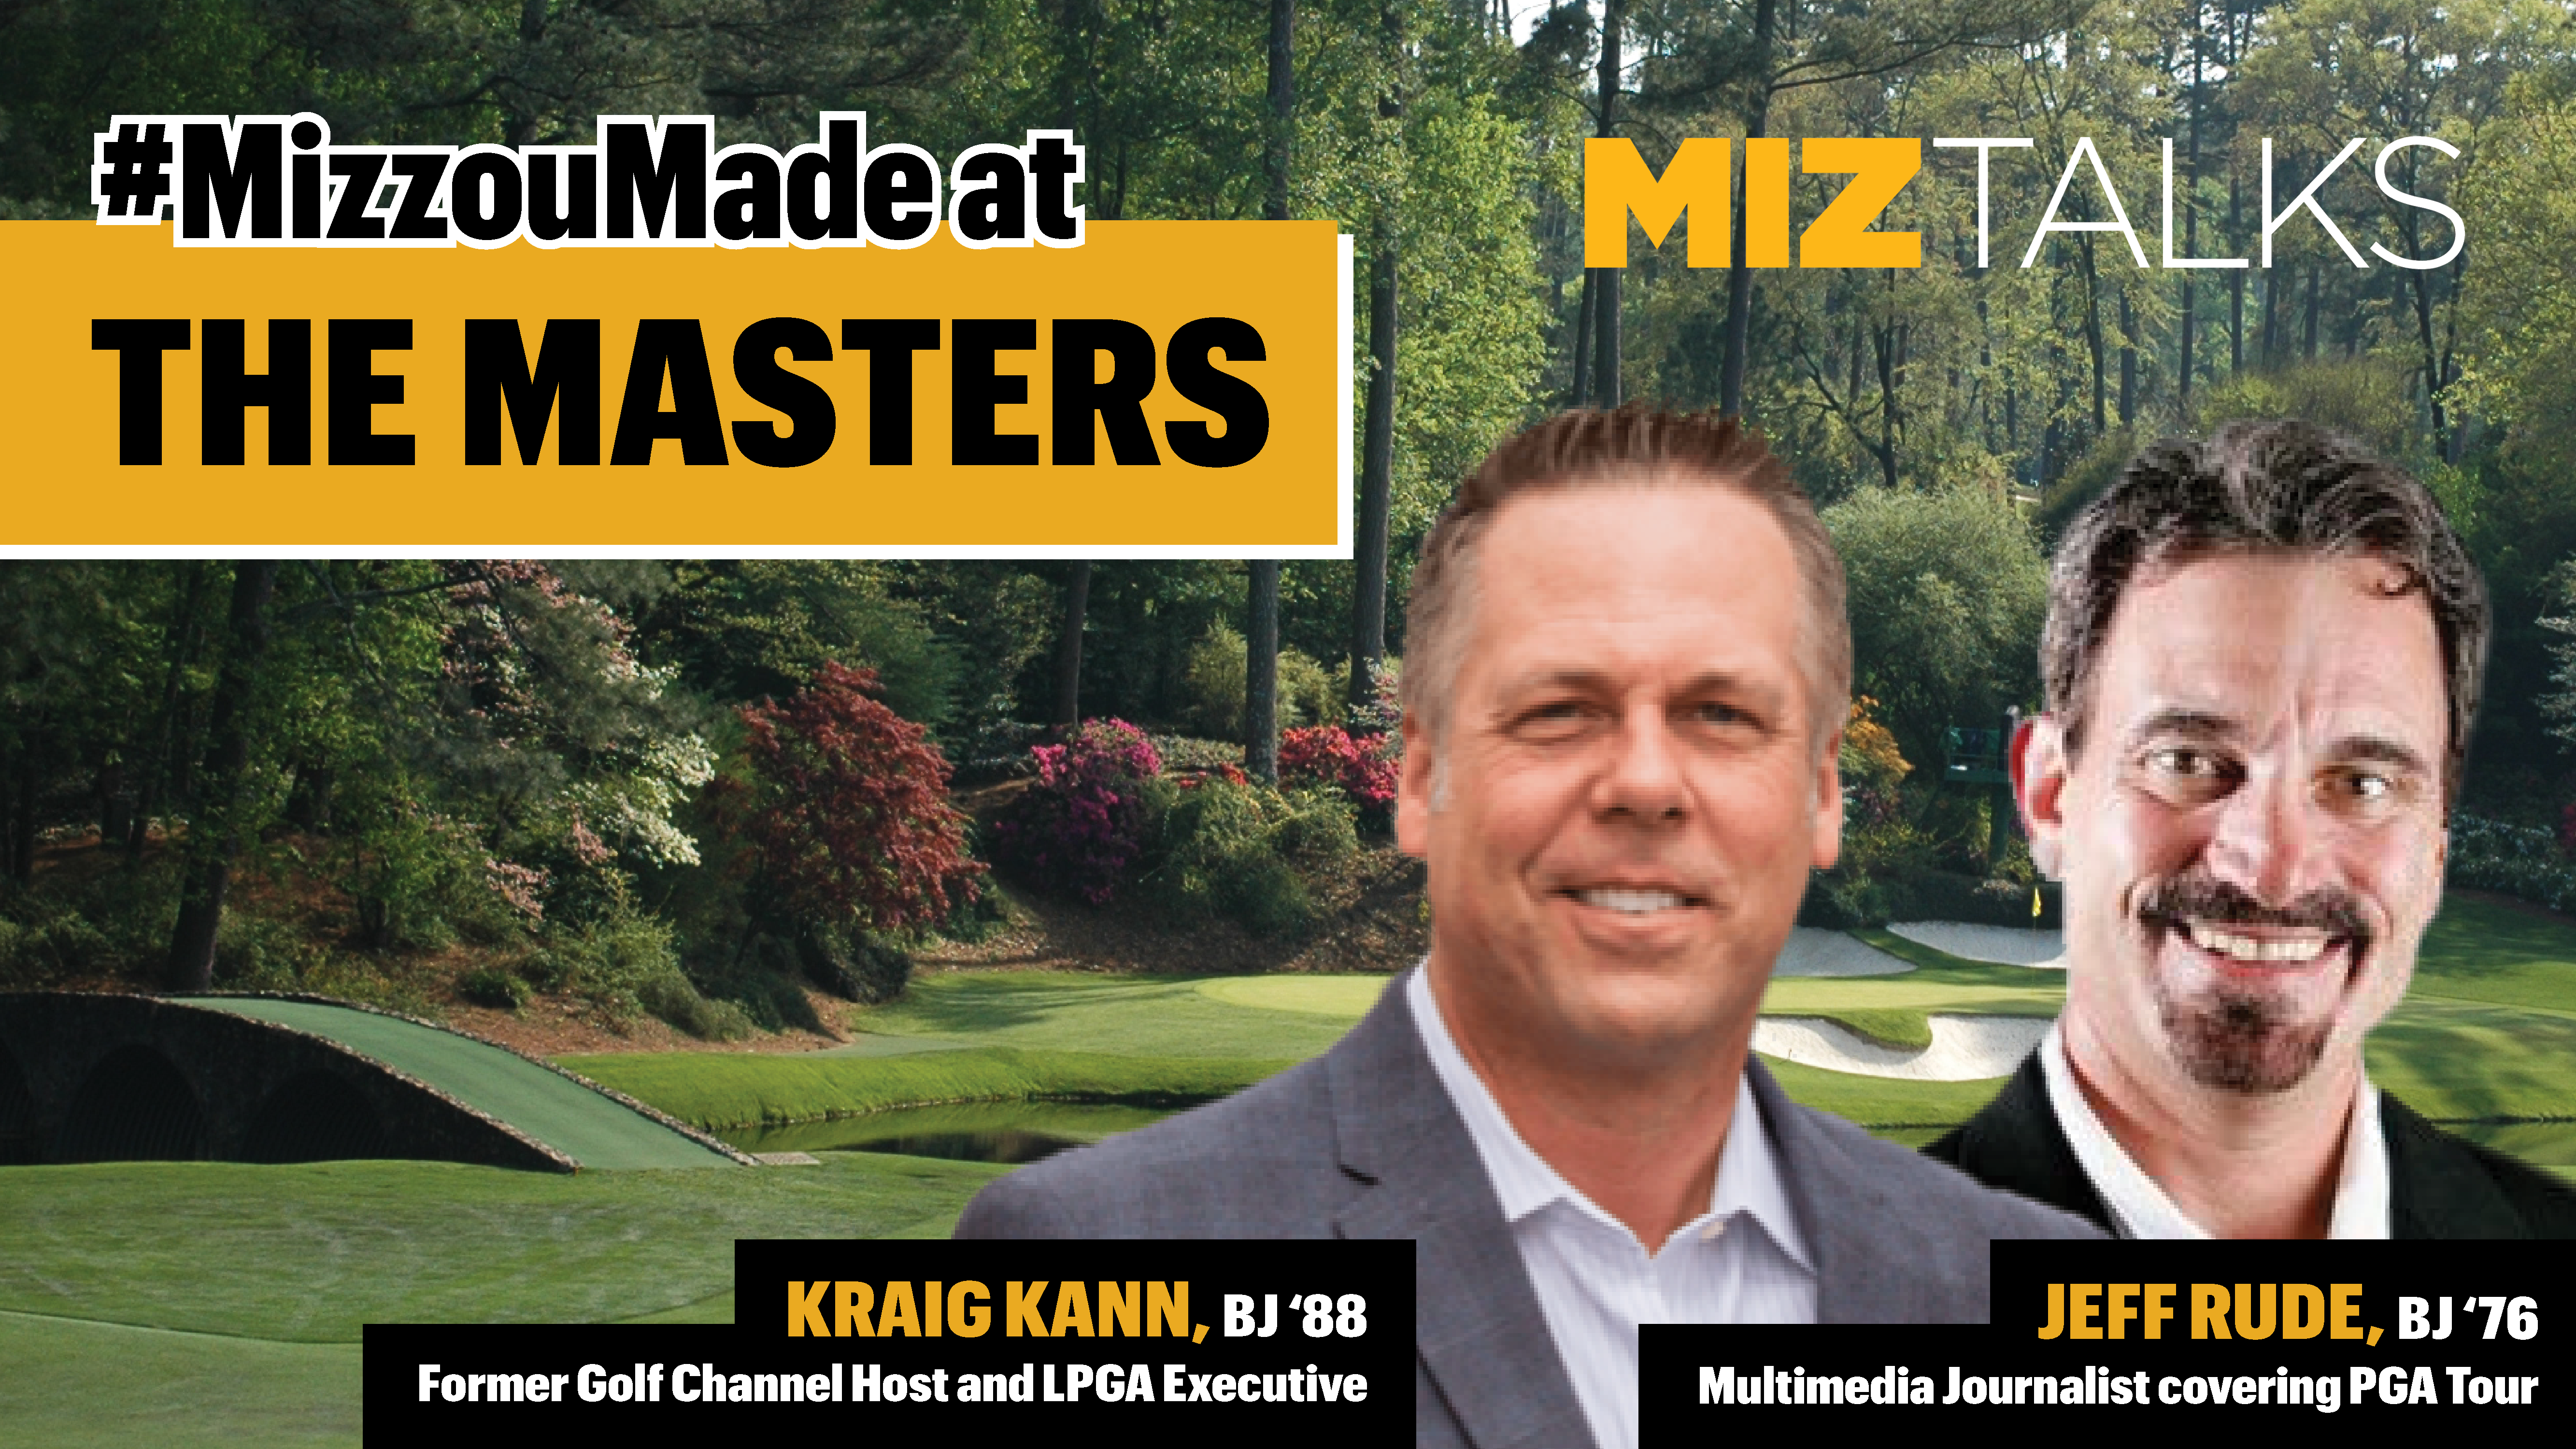 Image for #MizzouMade at the Masters webinar